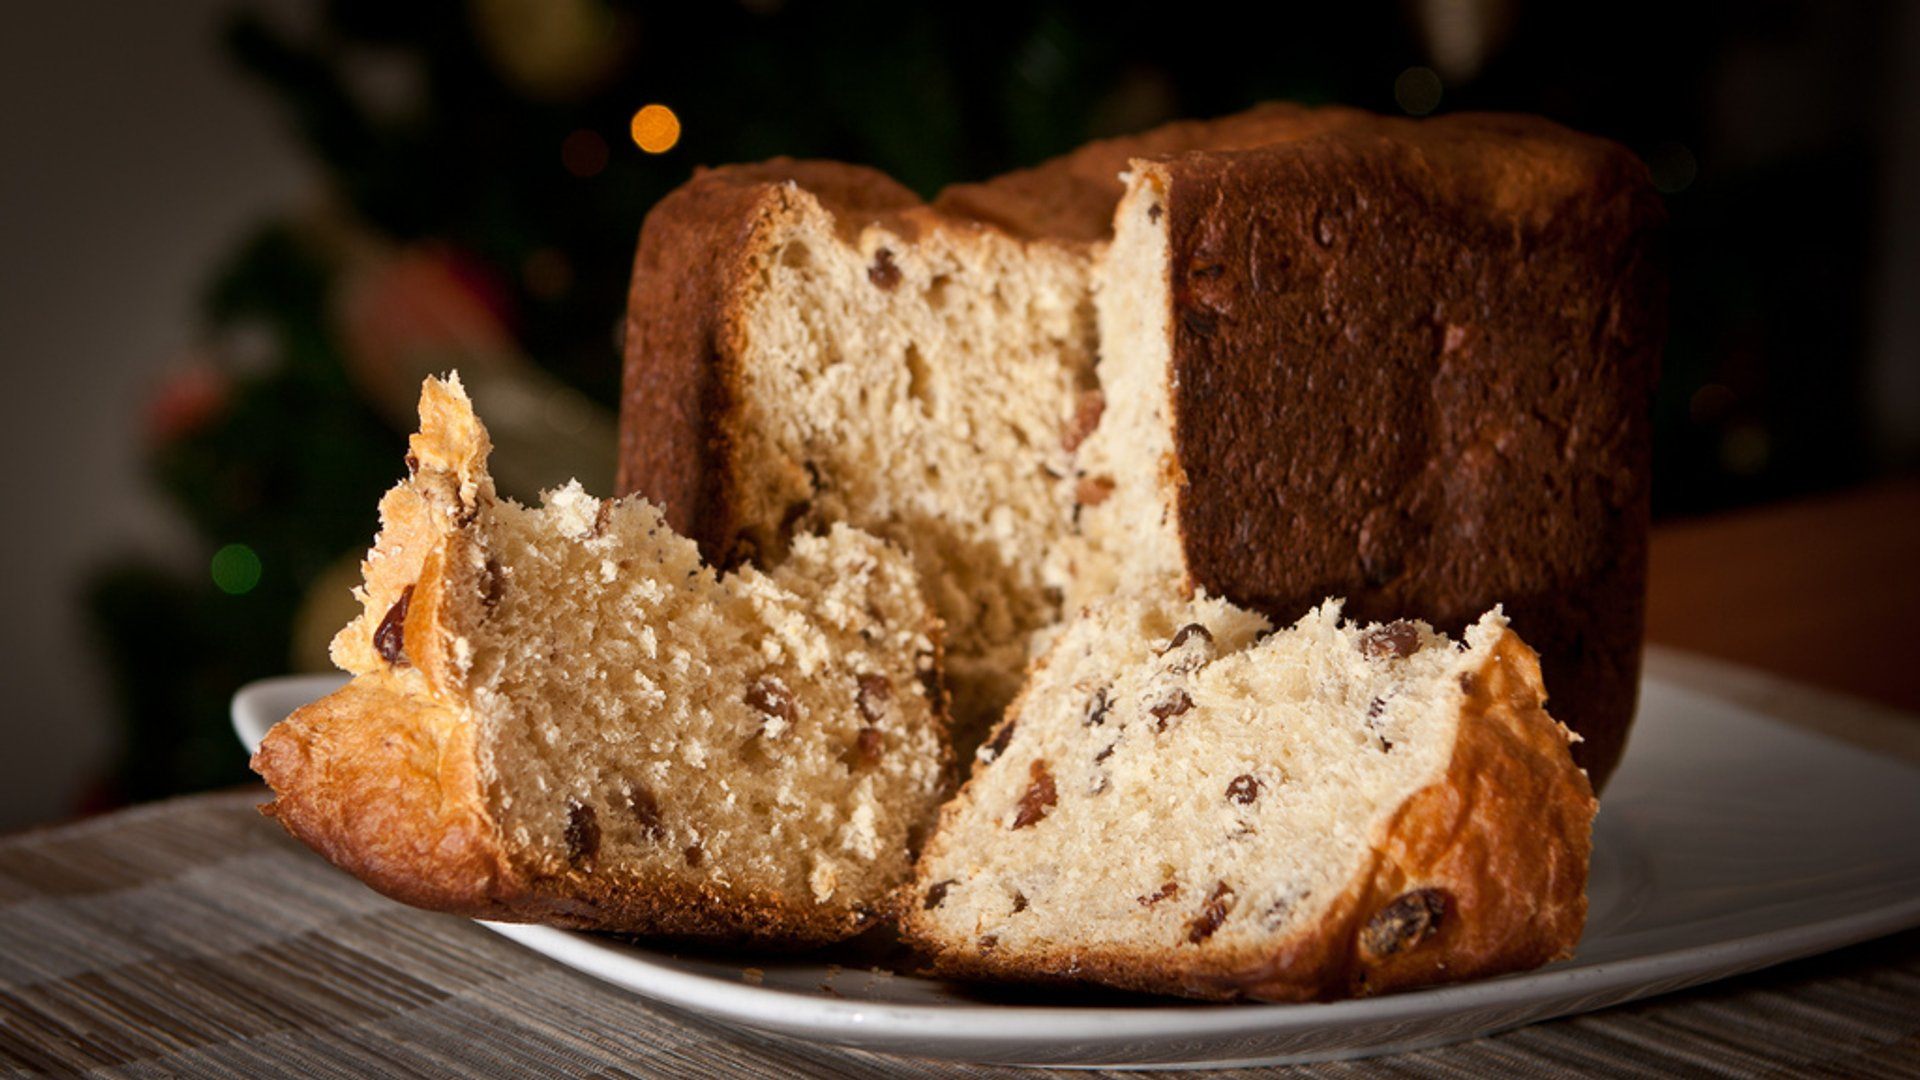 Homemade Panettone 2020